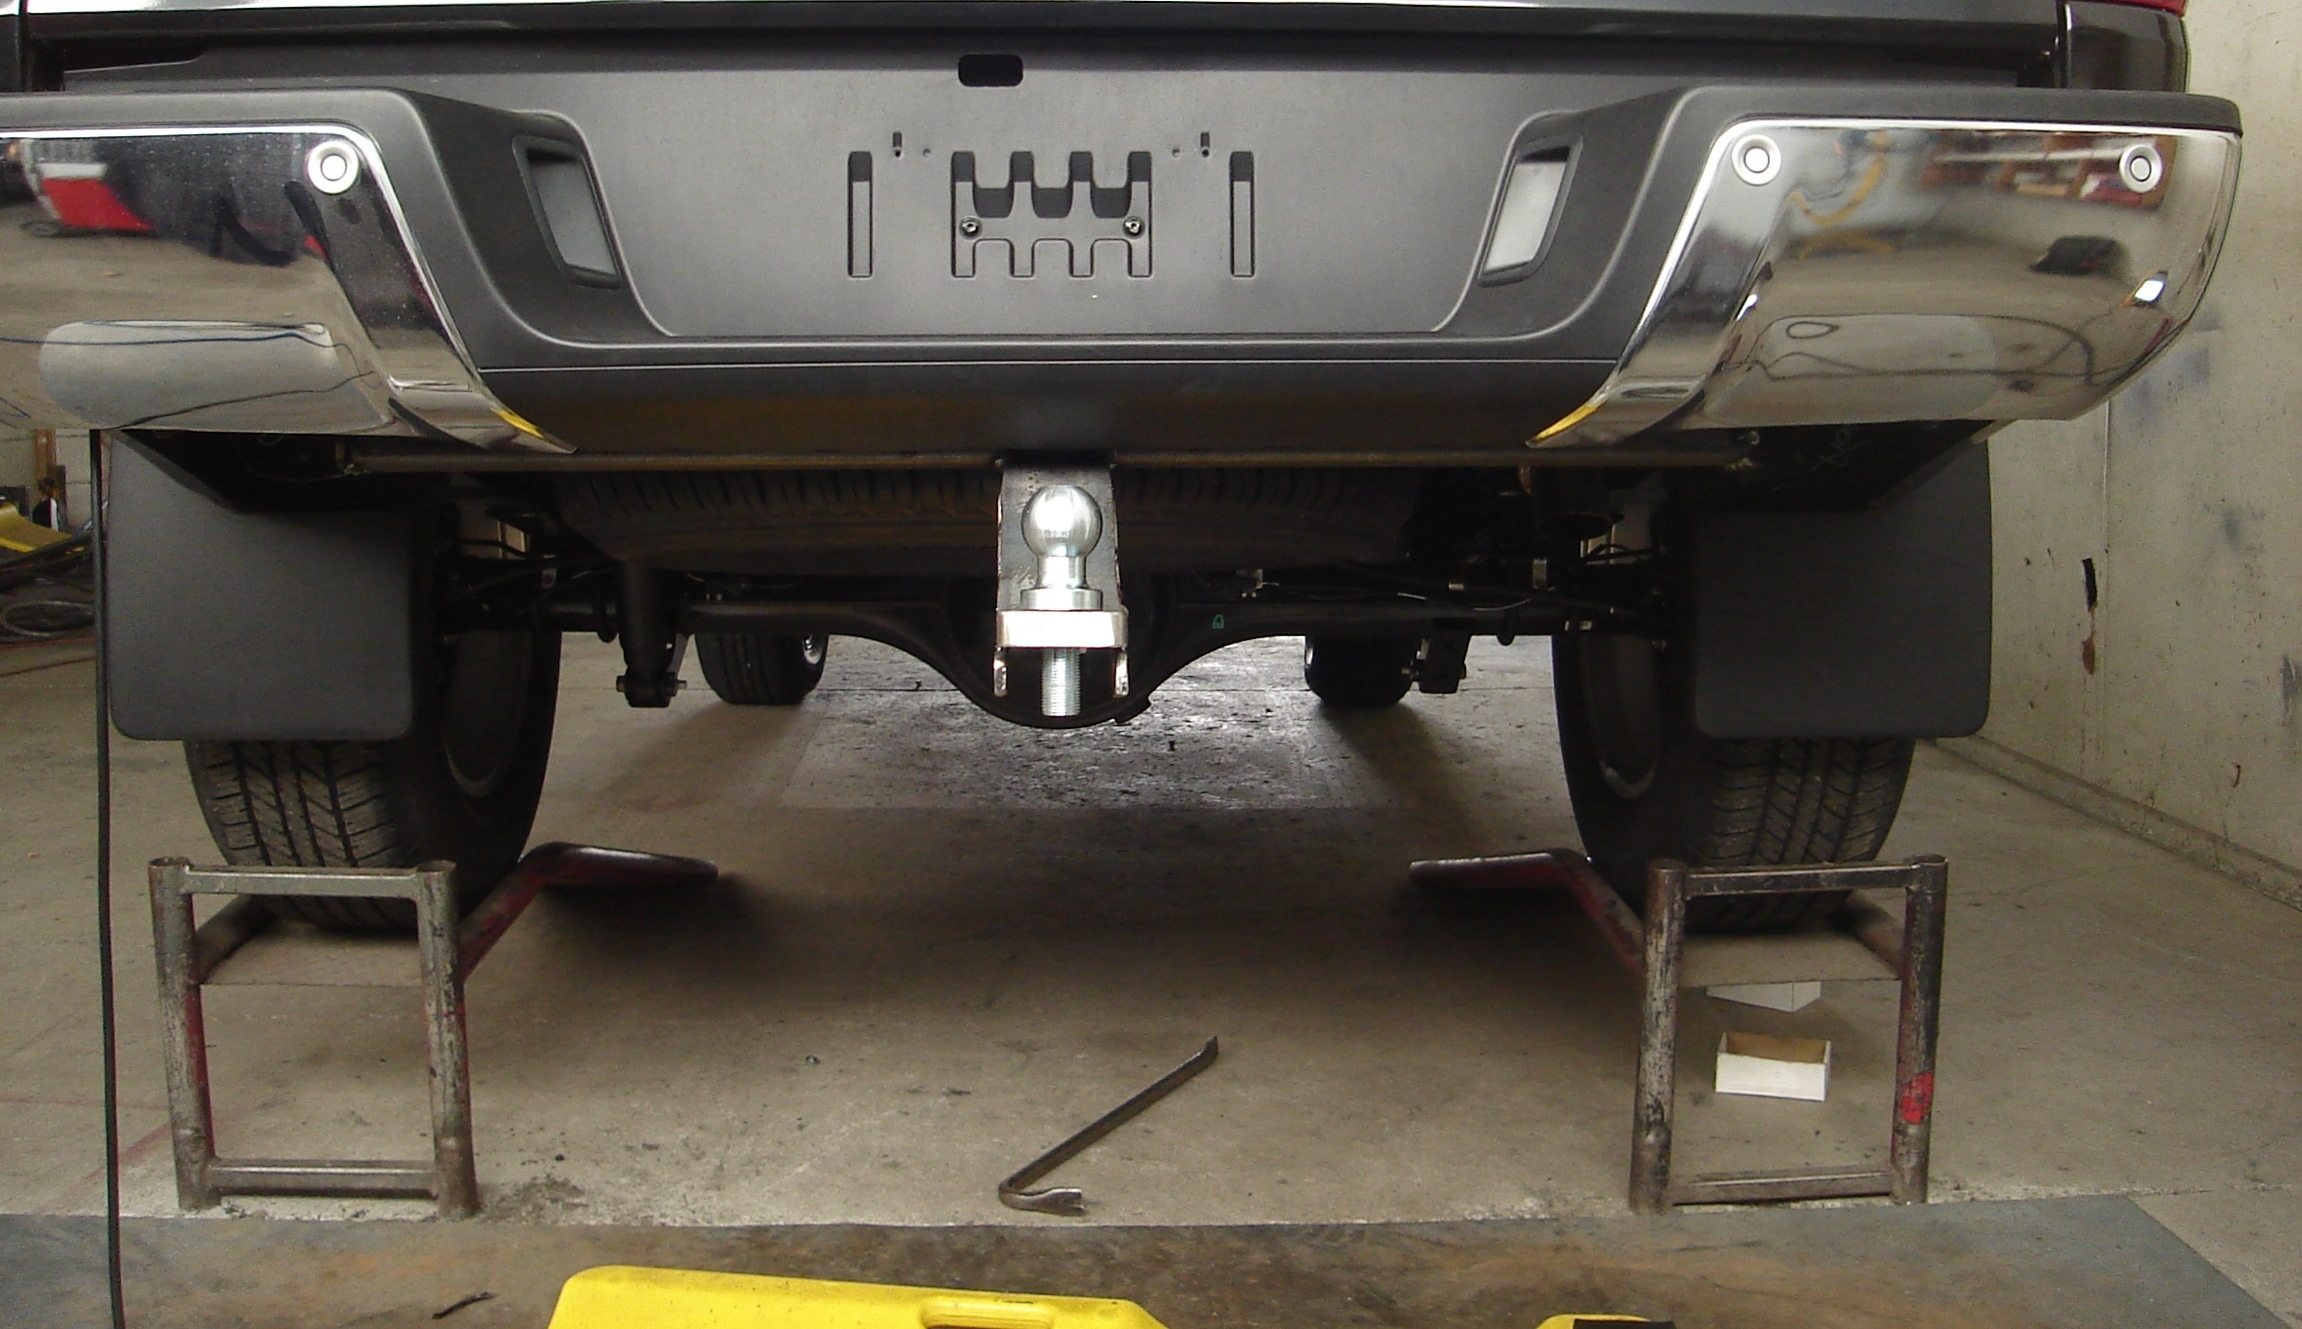 Best tow ball covers in New Zealand